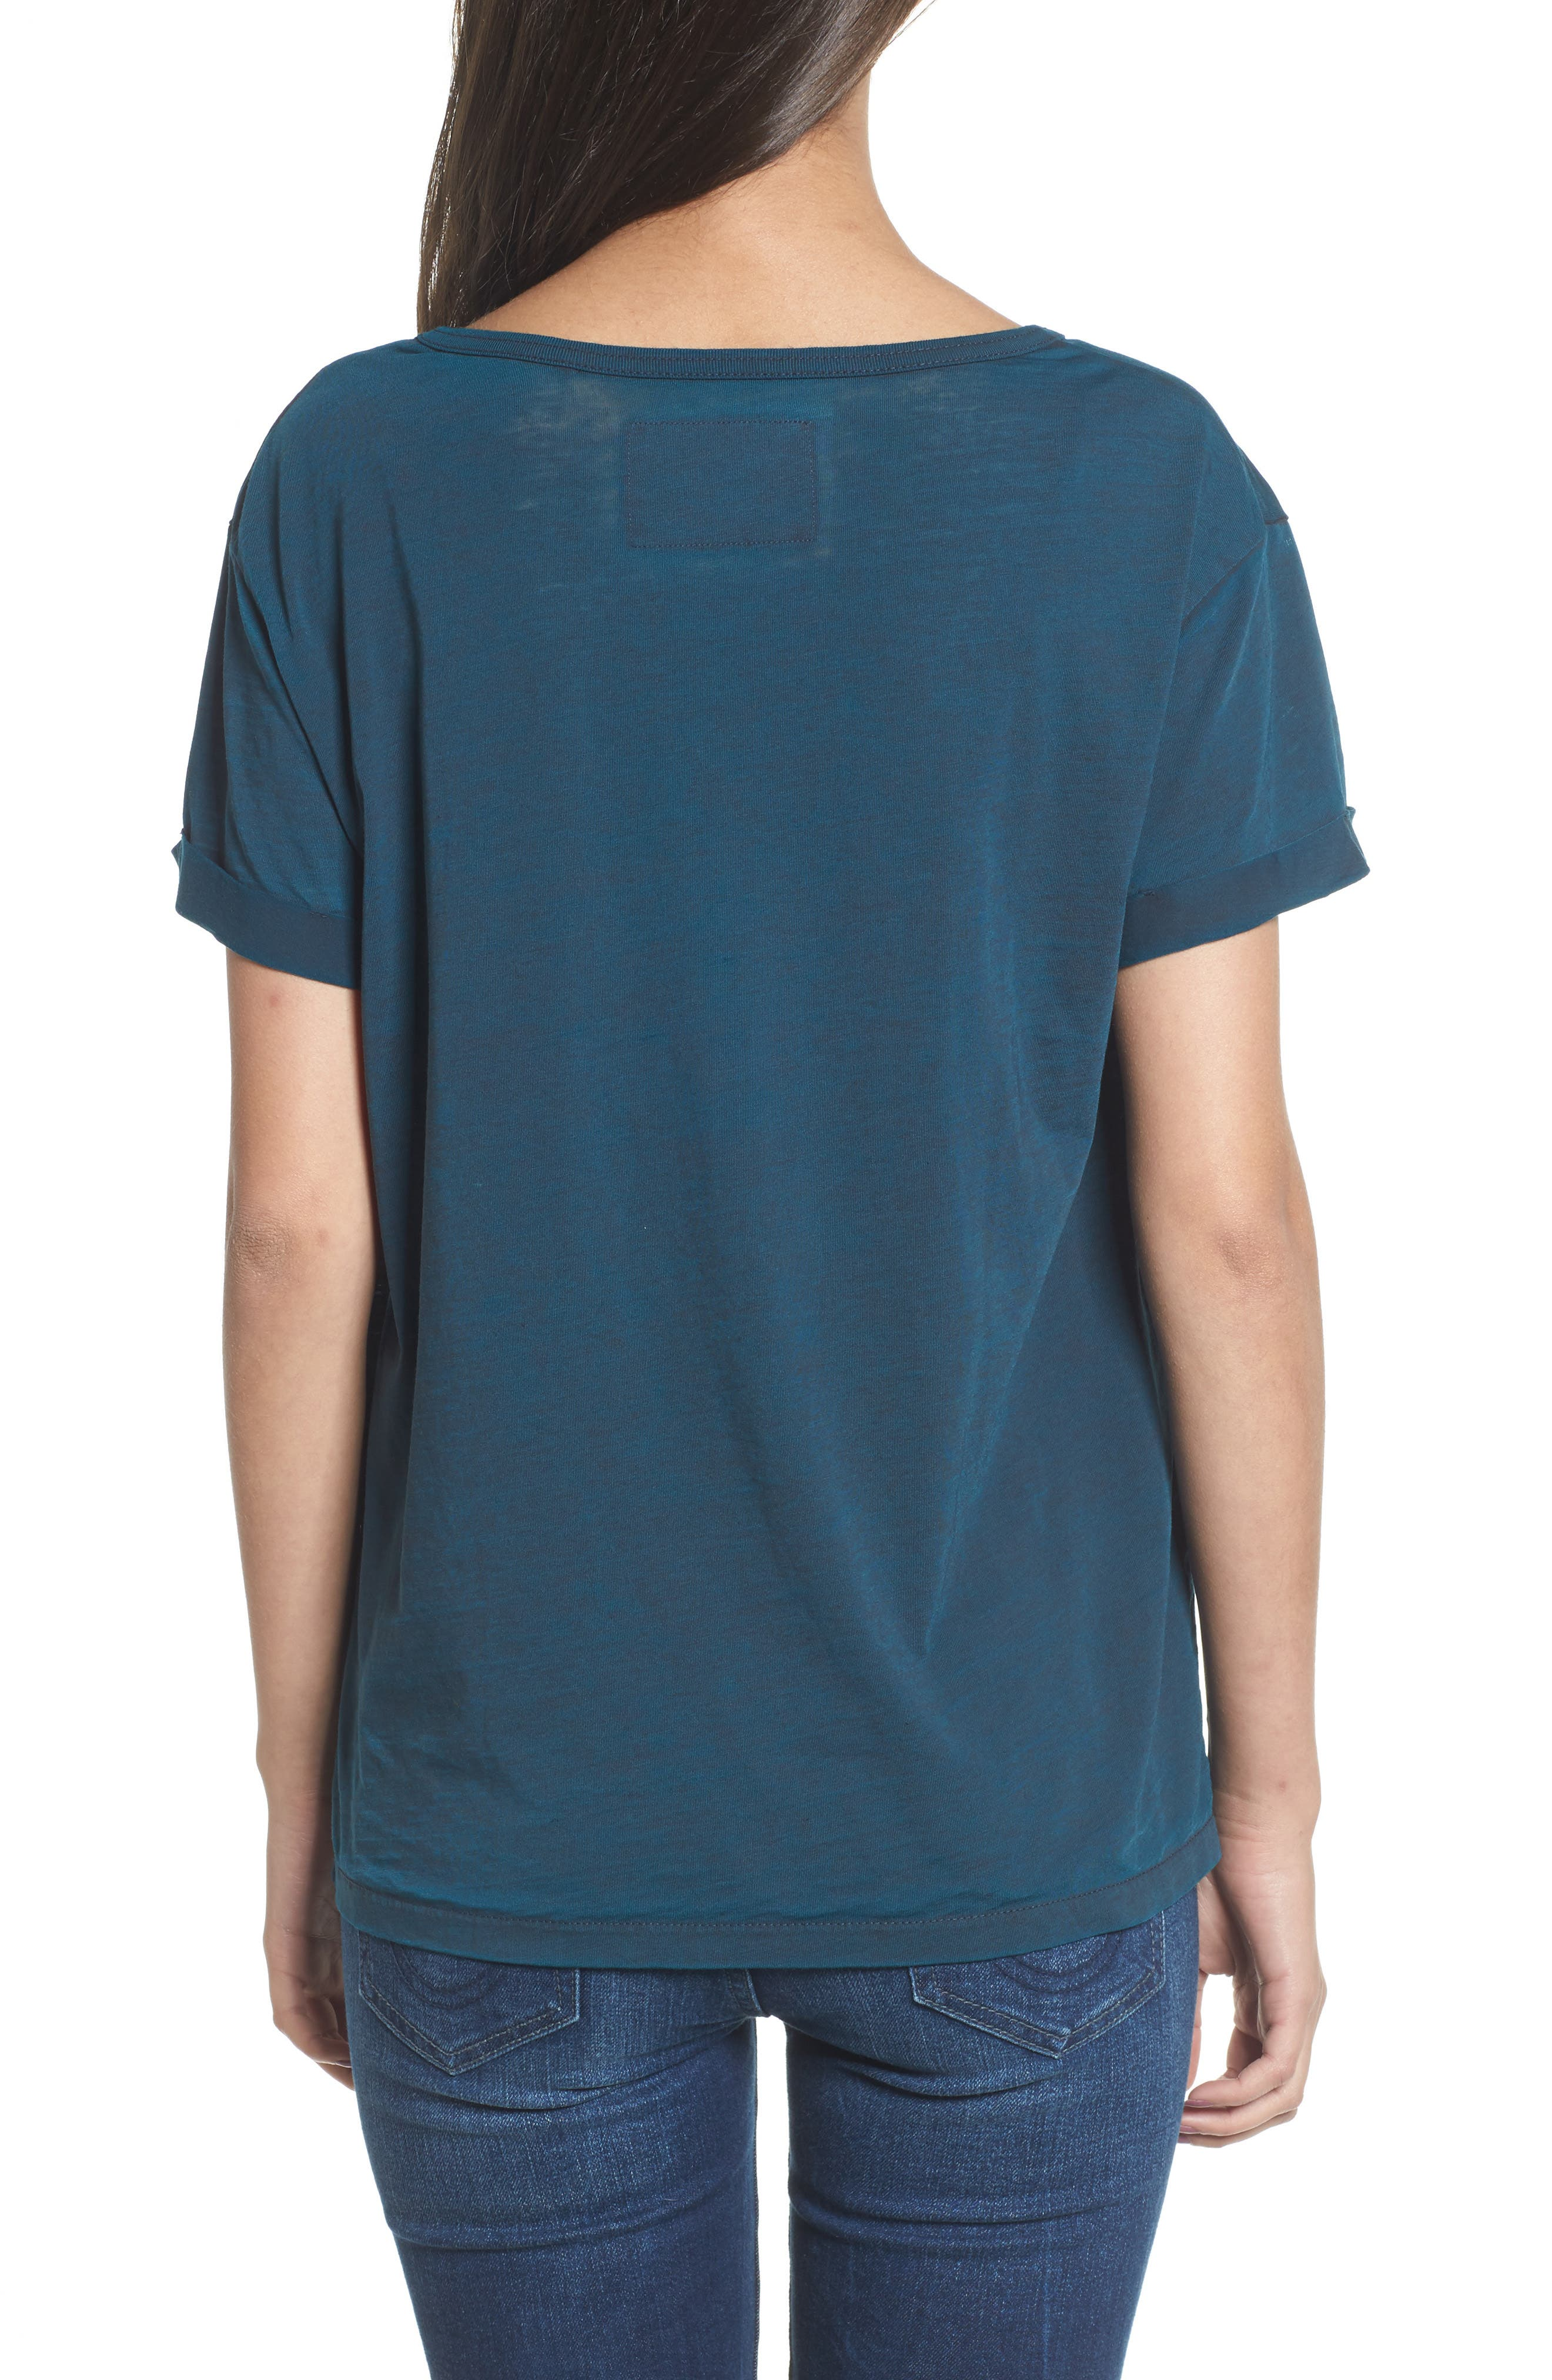 TRUE RELIGION BRAND JEANS,                             Fragment Tee,                             Alternate thumbnail 2, color,                             400